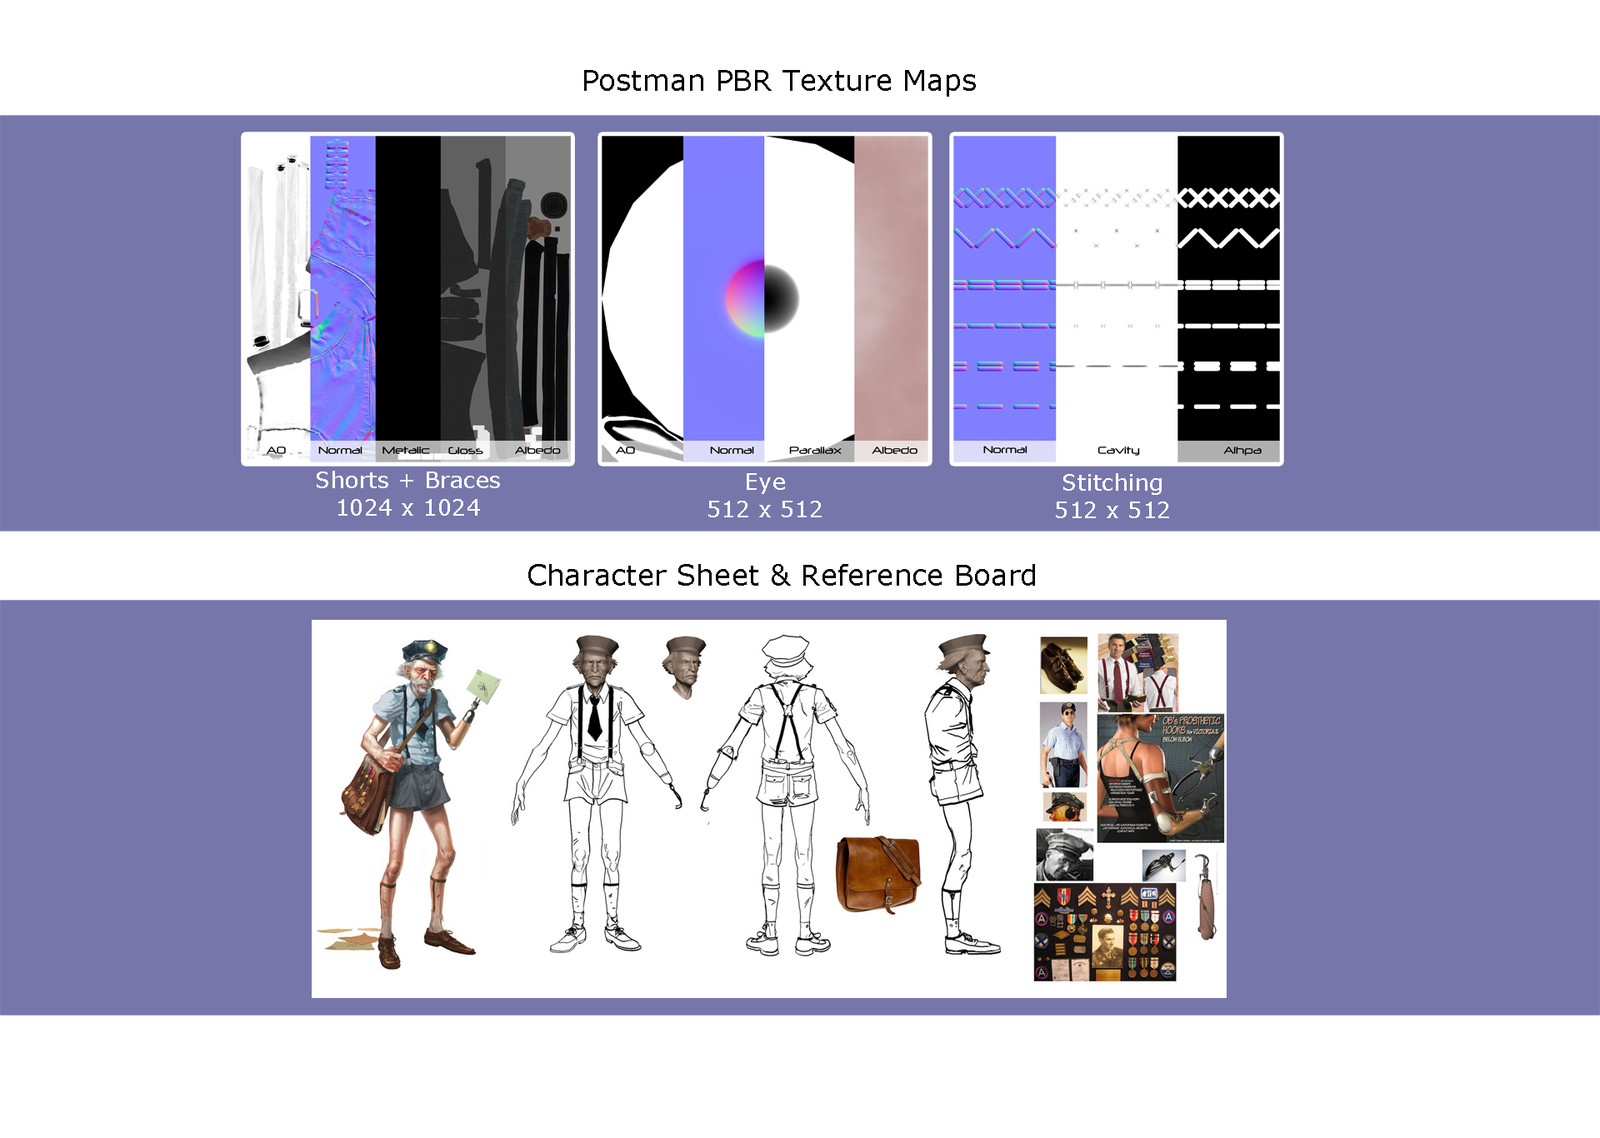 The character sheet was found in an online article that speculated that it had been leaked from RockStar Games and possibly for the development of Bully 2.